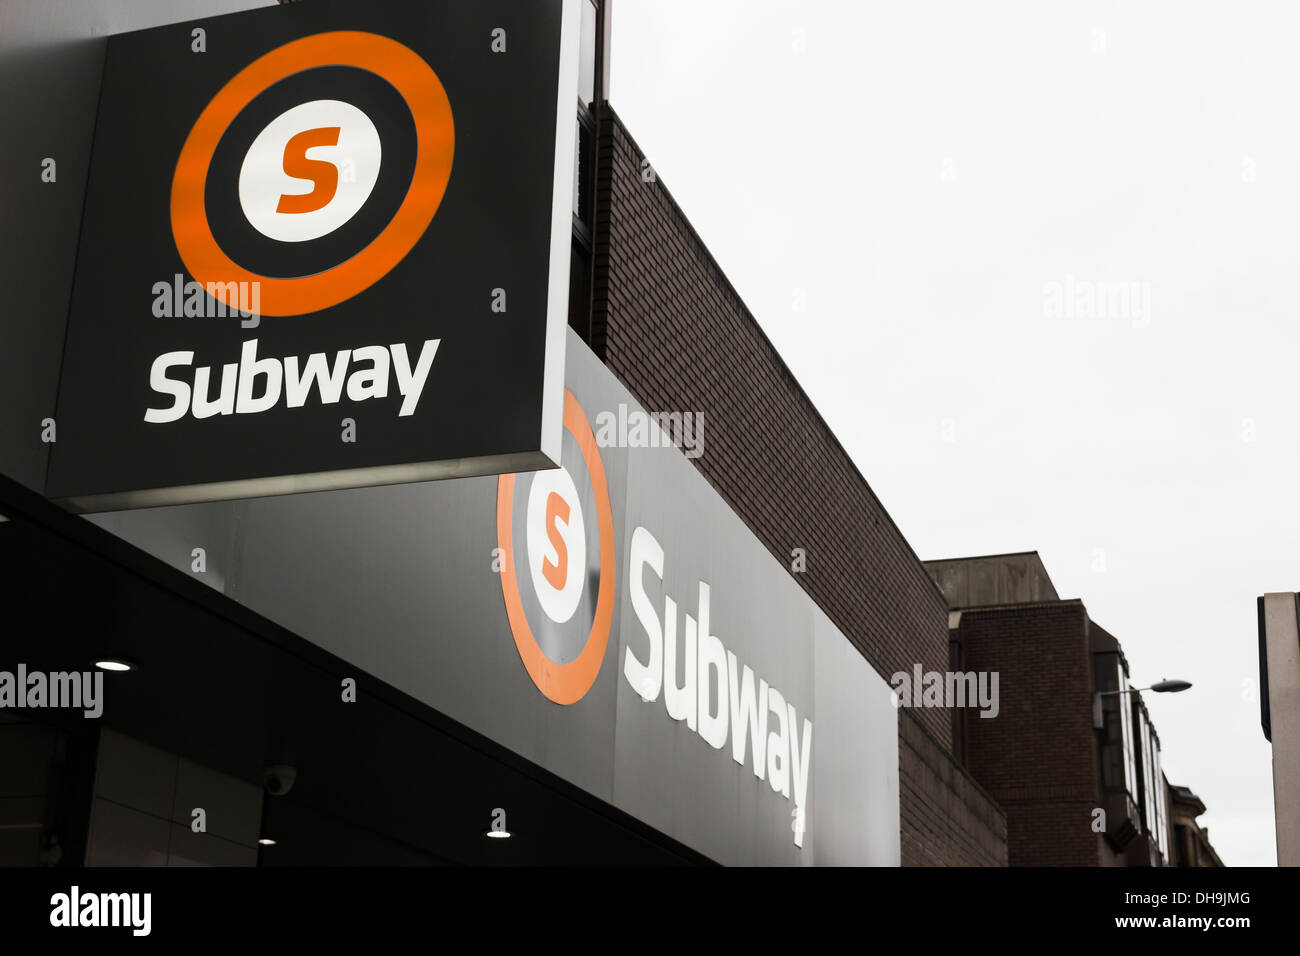 Opened in 1896 the Glasgow subway system is the third oldest metro system (after London and Budapest) - Stock Image